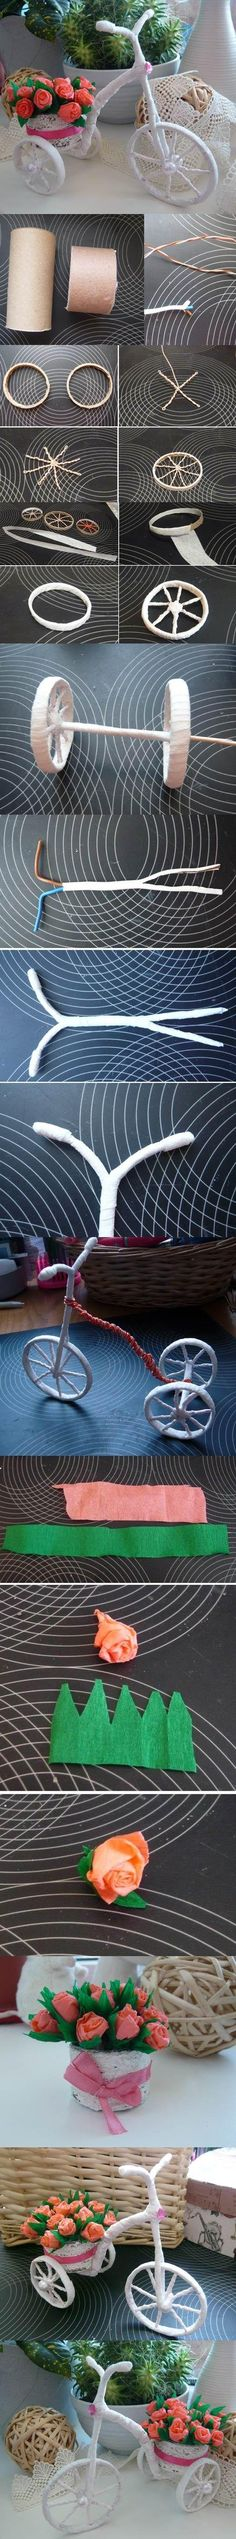 Diy Little Bike Carrying Beautiful Flowers Decoration 2 3 Hobbies And Crafts, Diy And Crafts, Crafts For Kids, Arts And Crafts, Art N Craft, Diy Art, Diy Paper, Paper Crafts, Origami